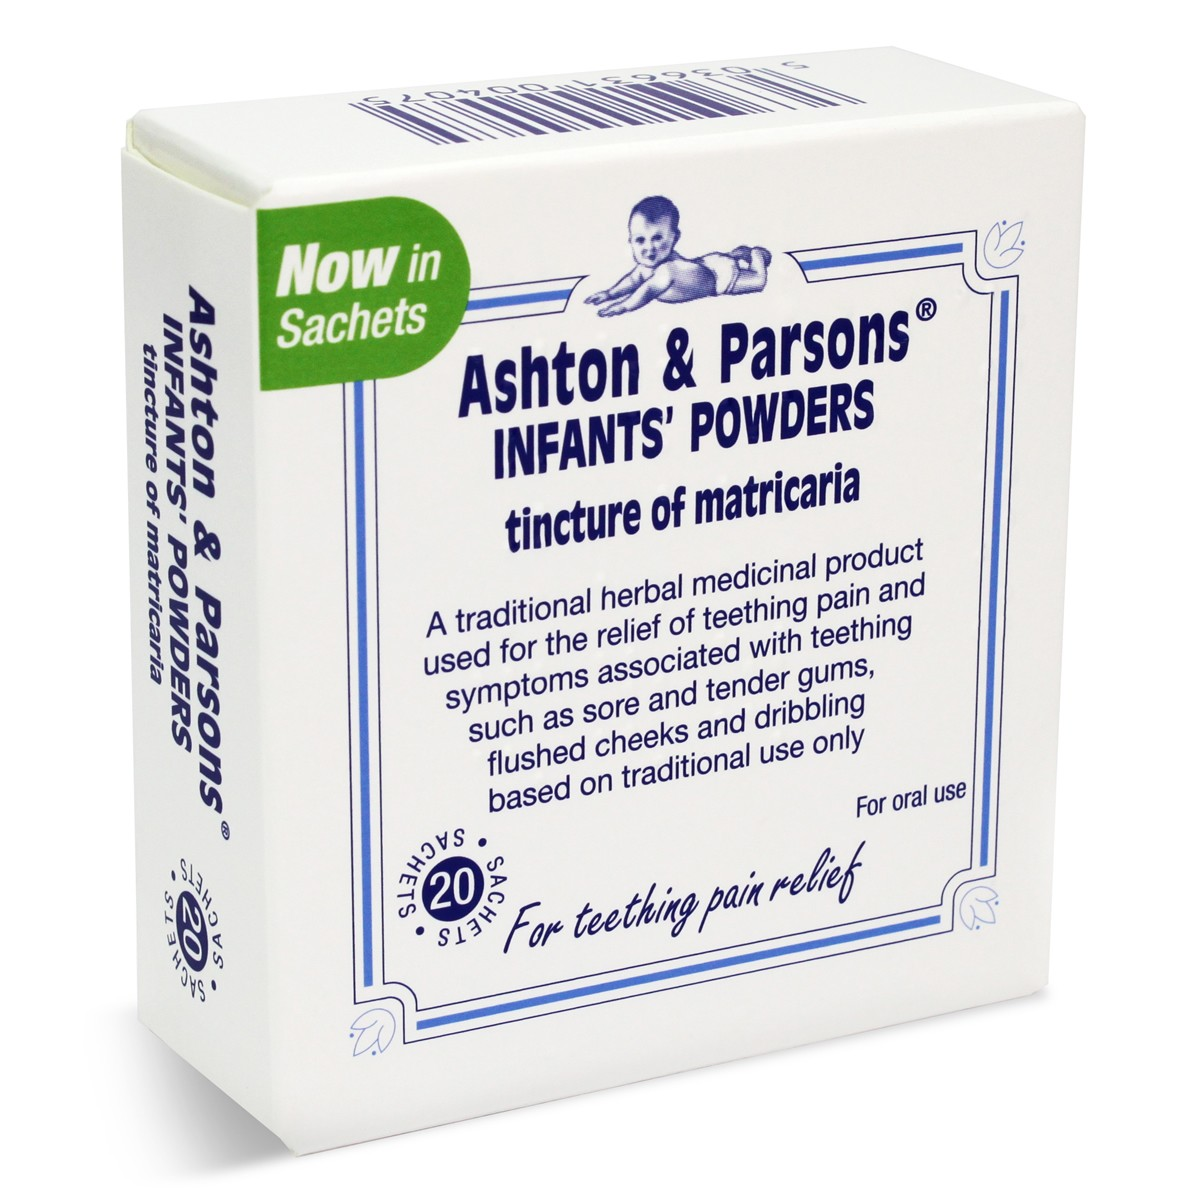 Ashton and Parsons Infant`s Powders